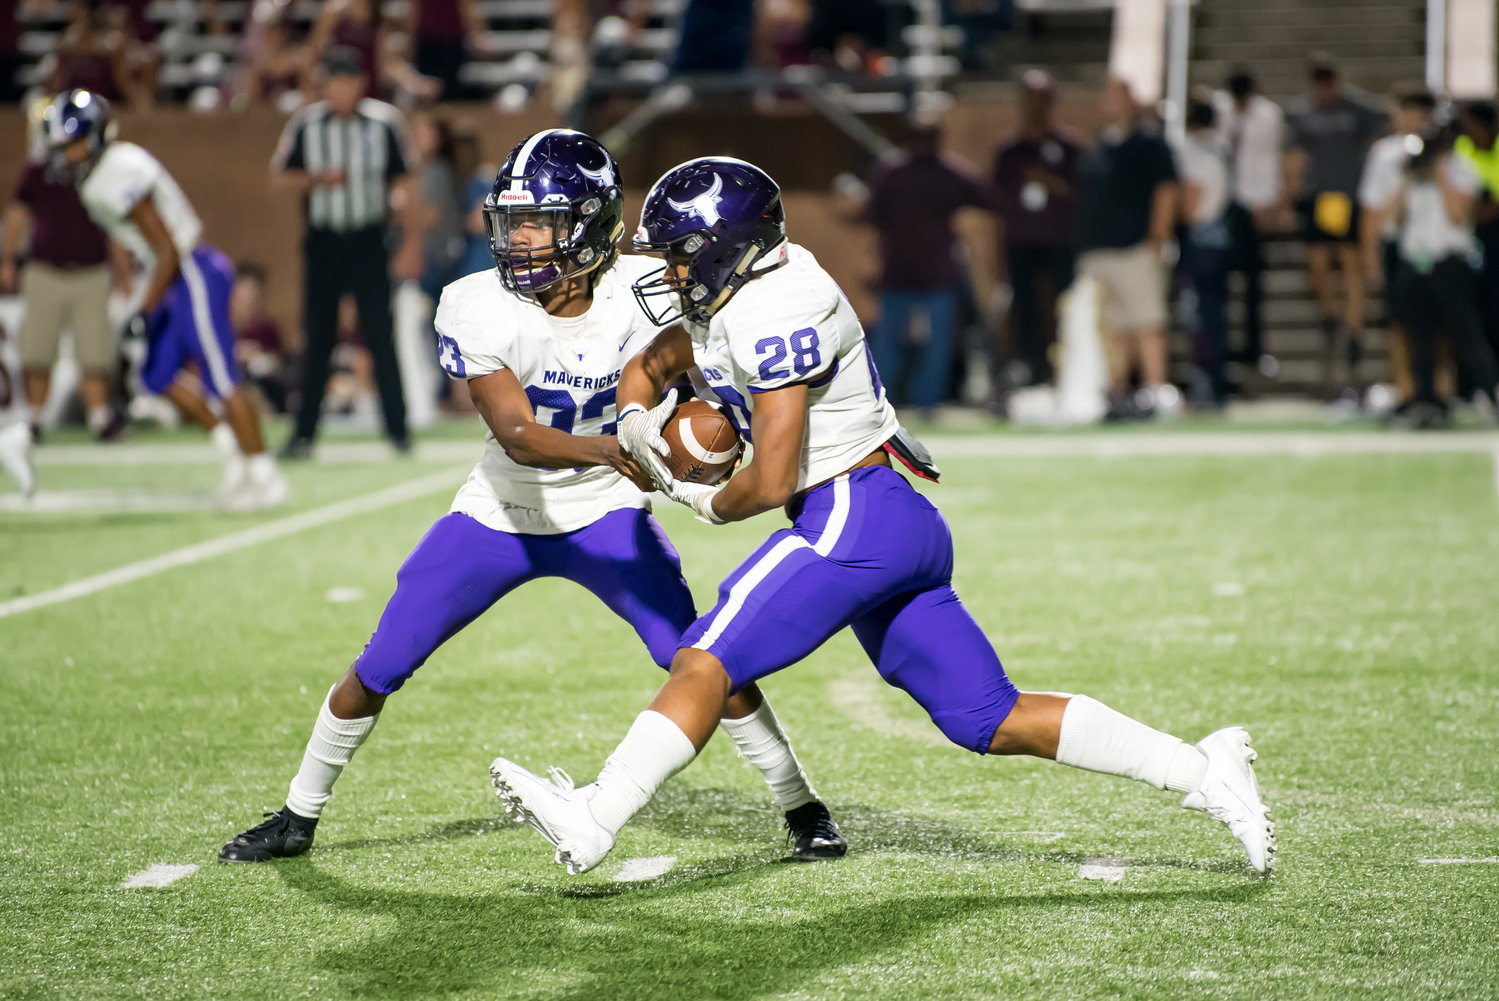 Morton Ranch quarterback Jaymarcus Wilson (23) hands off to running back Devin Winfield during a game against Cinco Ranch on Oct. 4 at Legacy Stadium.